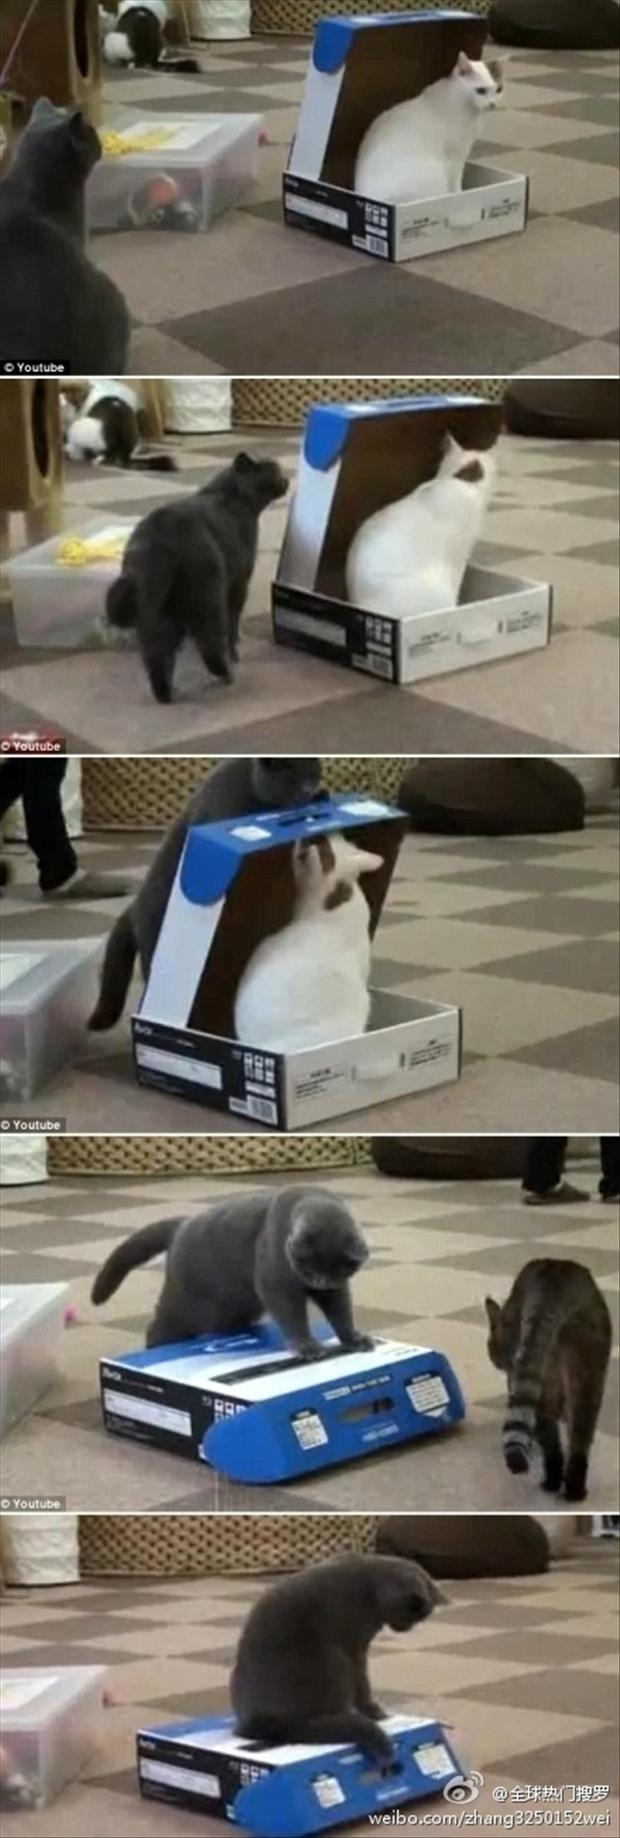 3 funny cats in the box,